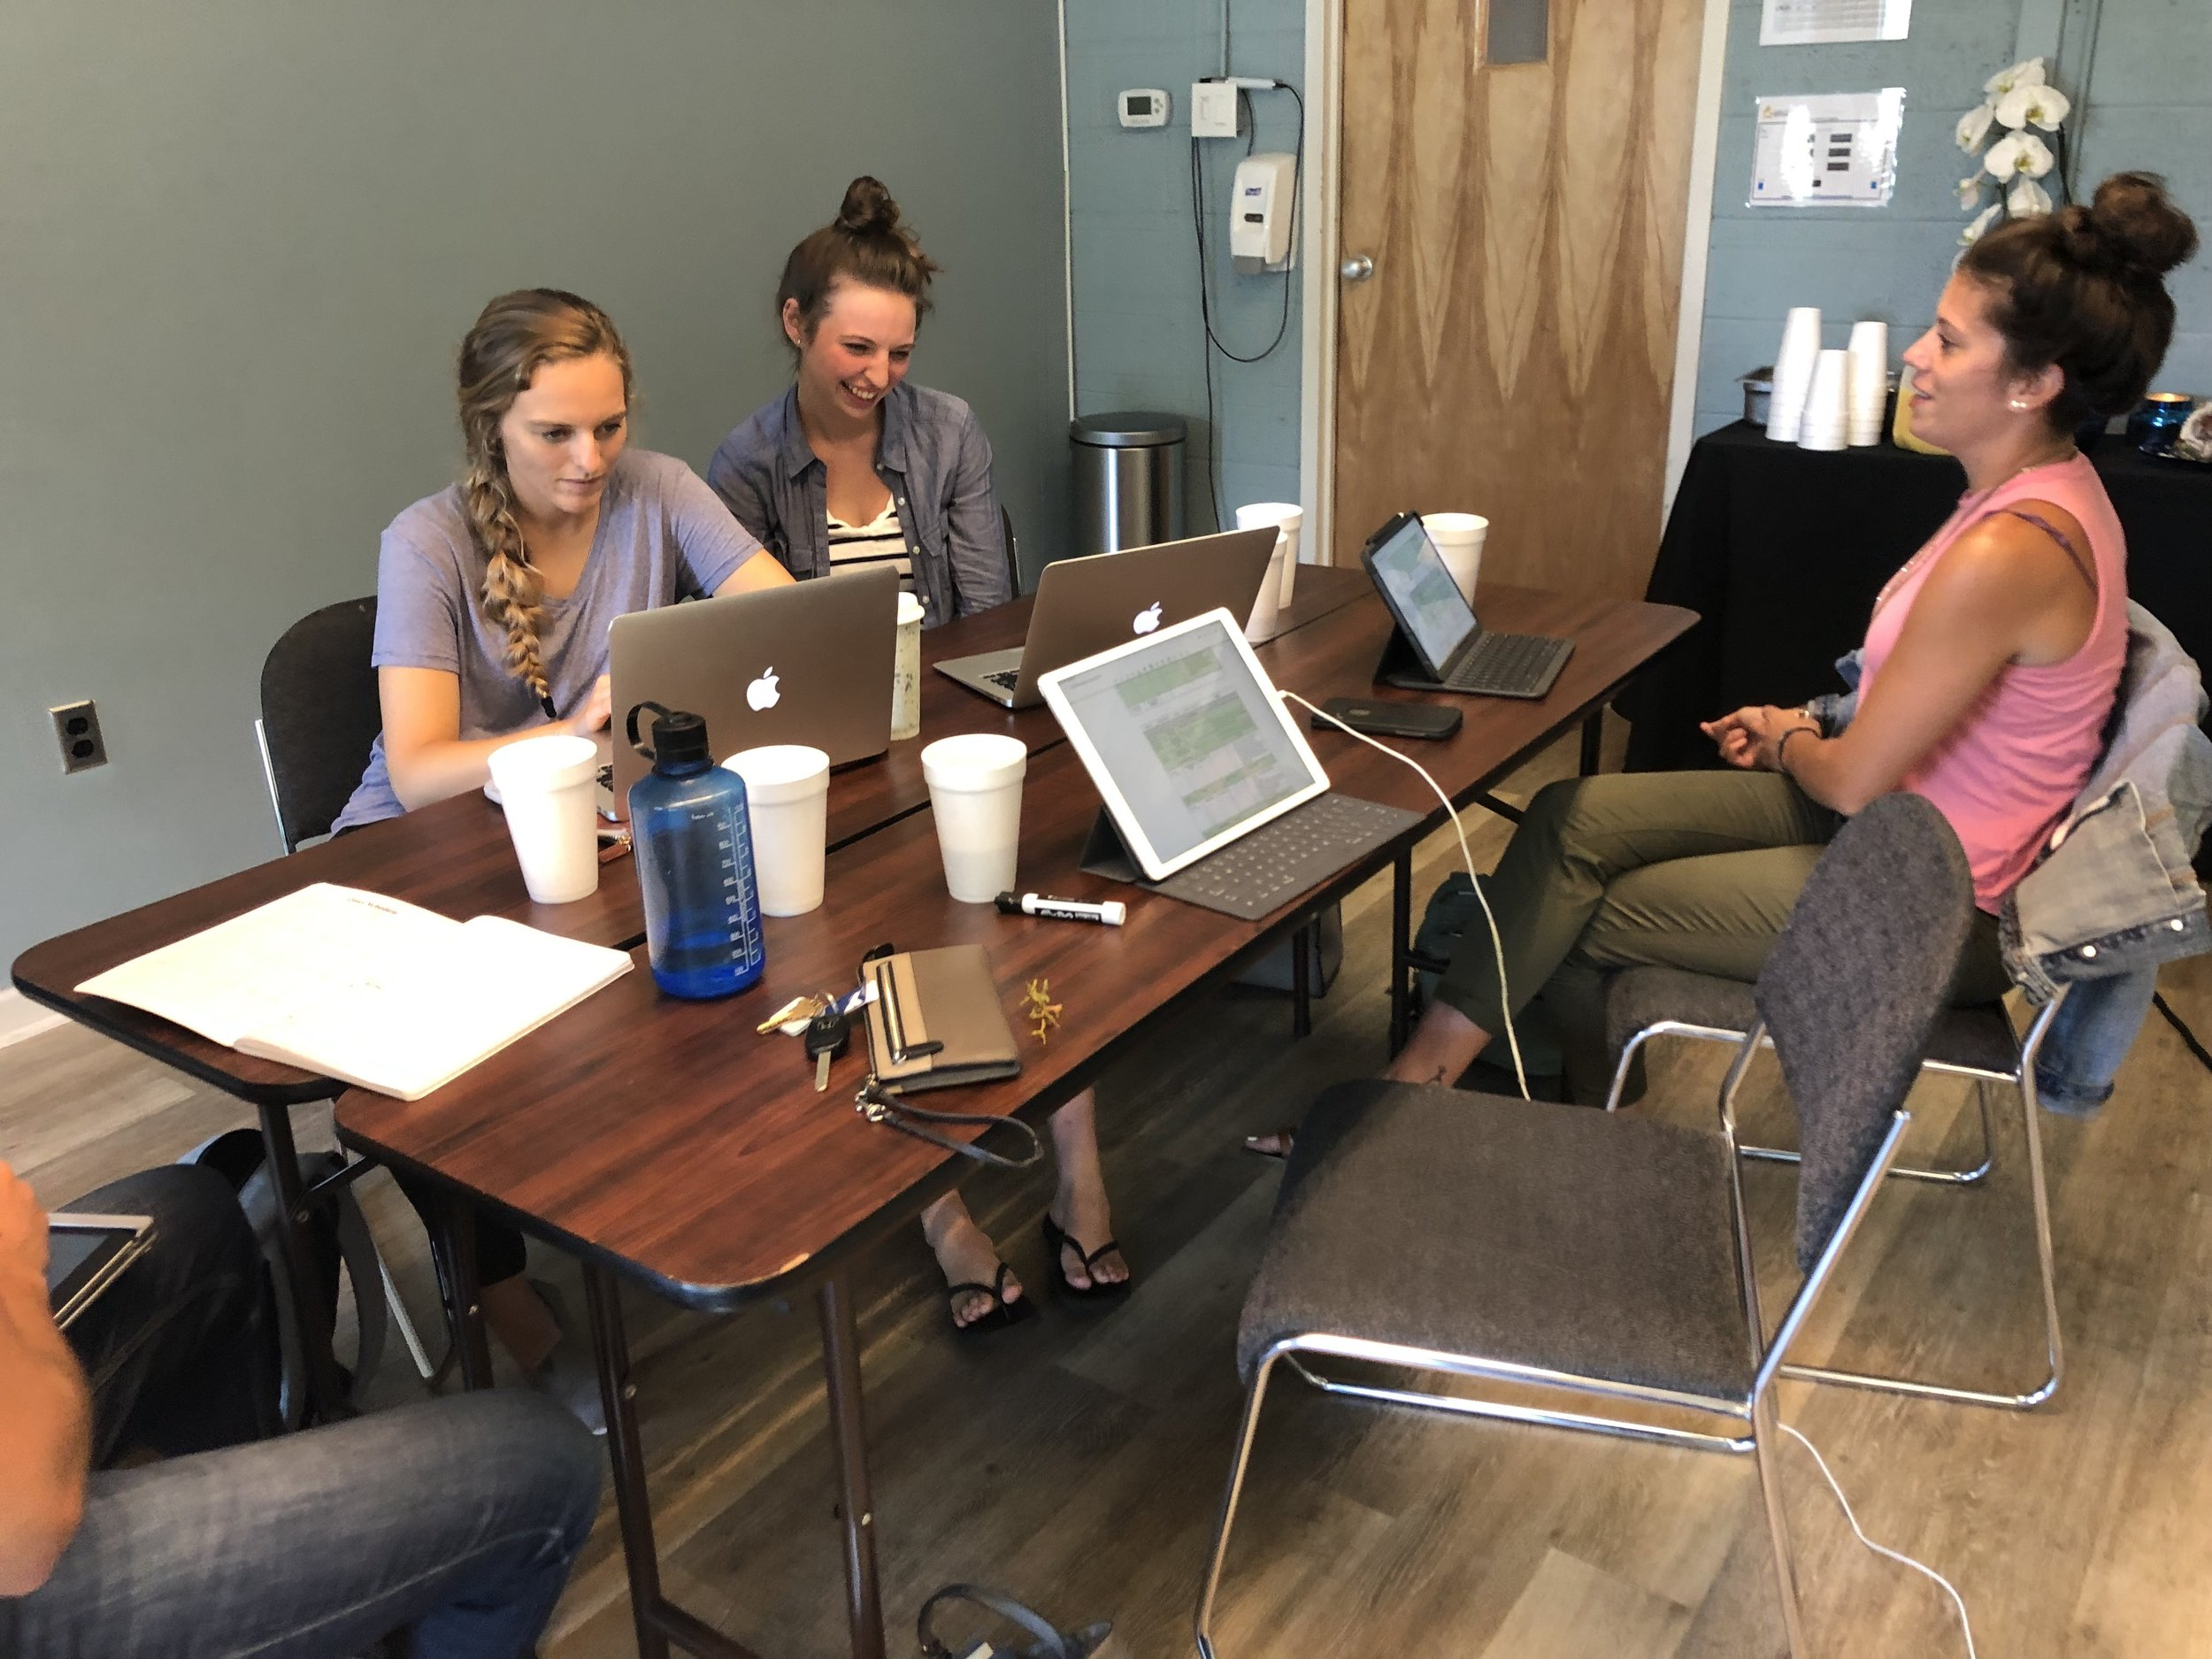 Kennedy worked with the Supervisor team to plan summer work schedules for their youth. At WorkWell, the Peer Leaders learn how to coordinate with their team to facilitate an excellent youth program!